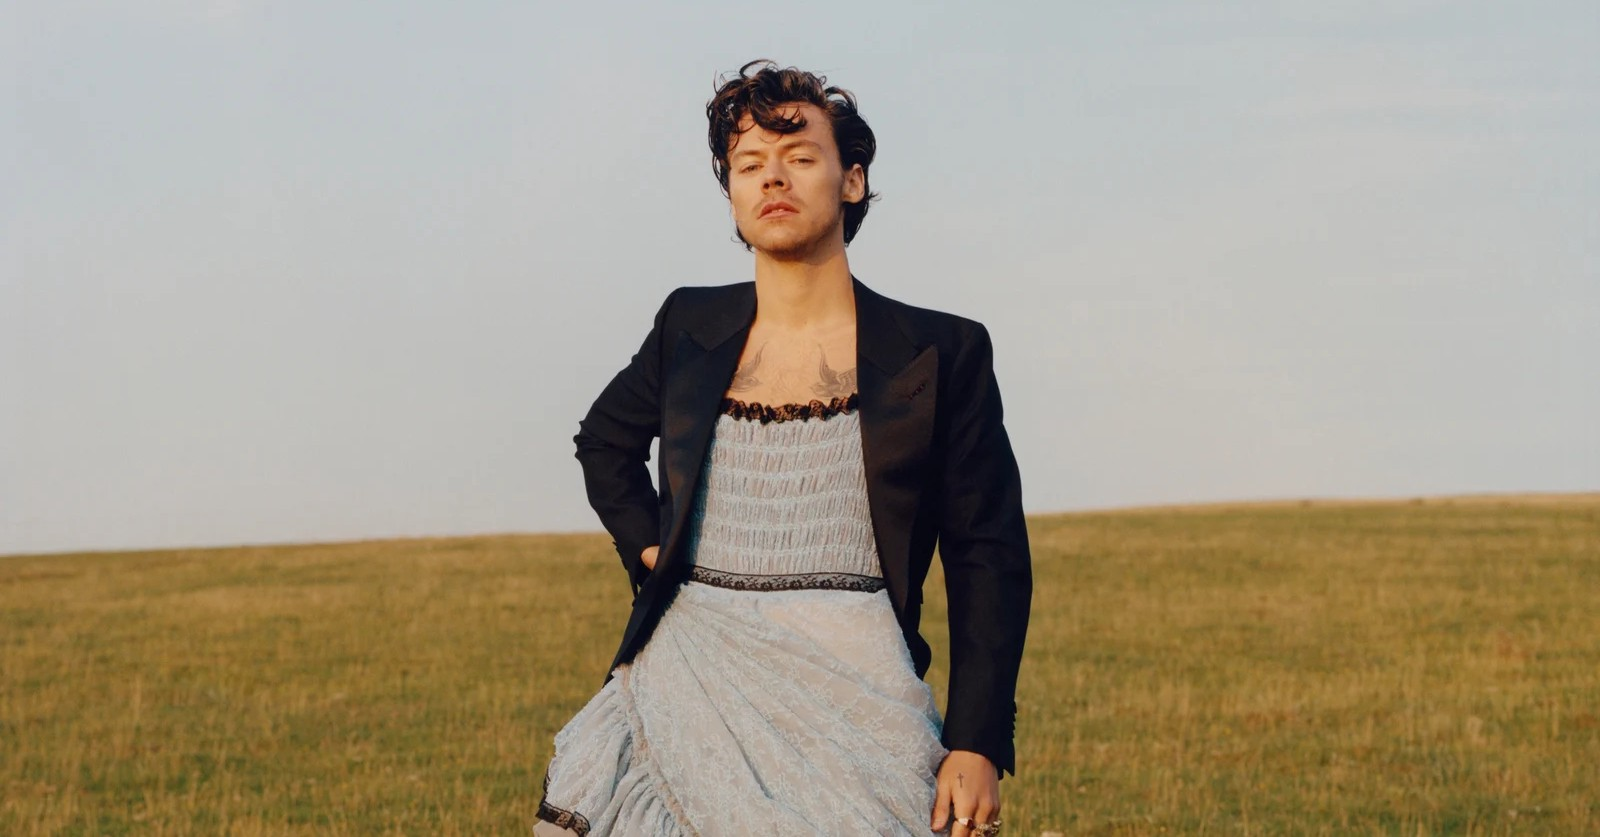 A picture of Harry Styles in a light blue dress from his Vogue photoshoot